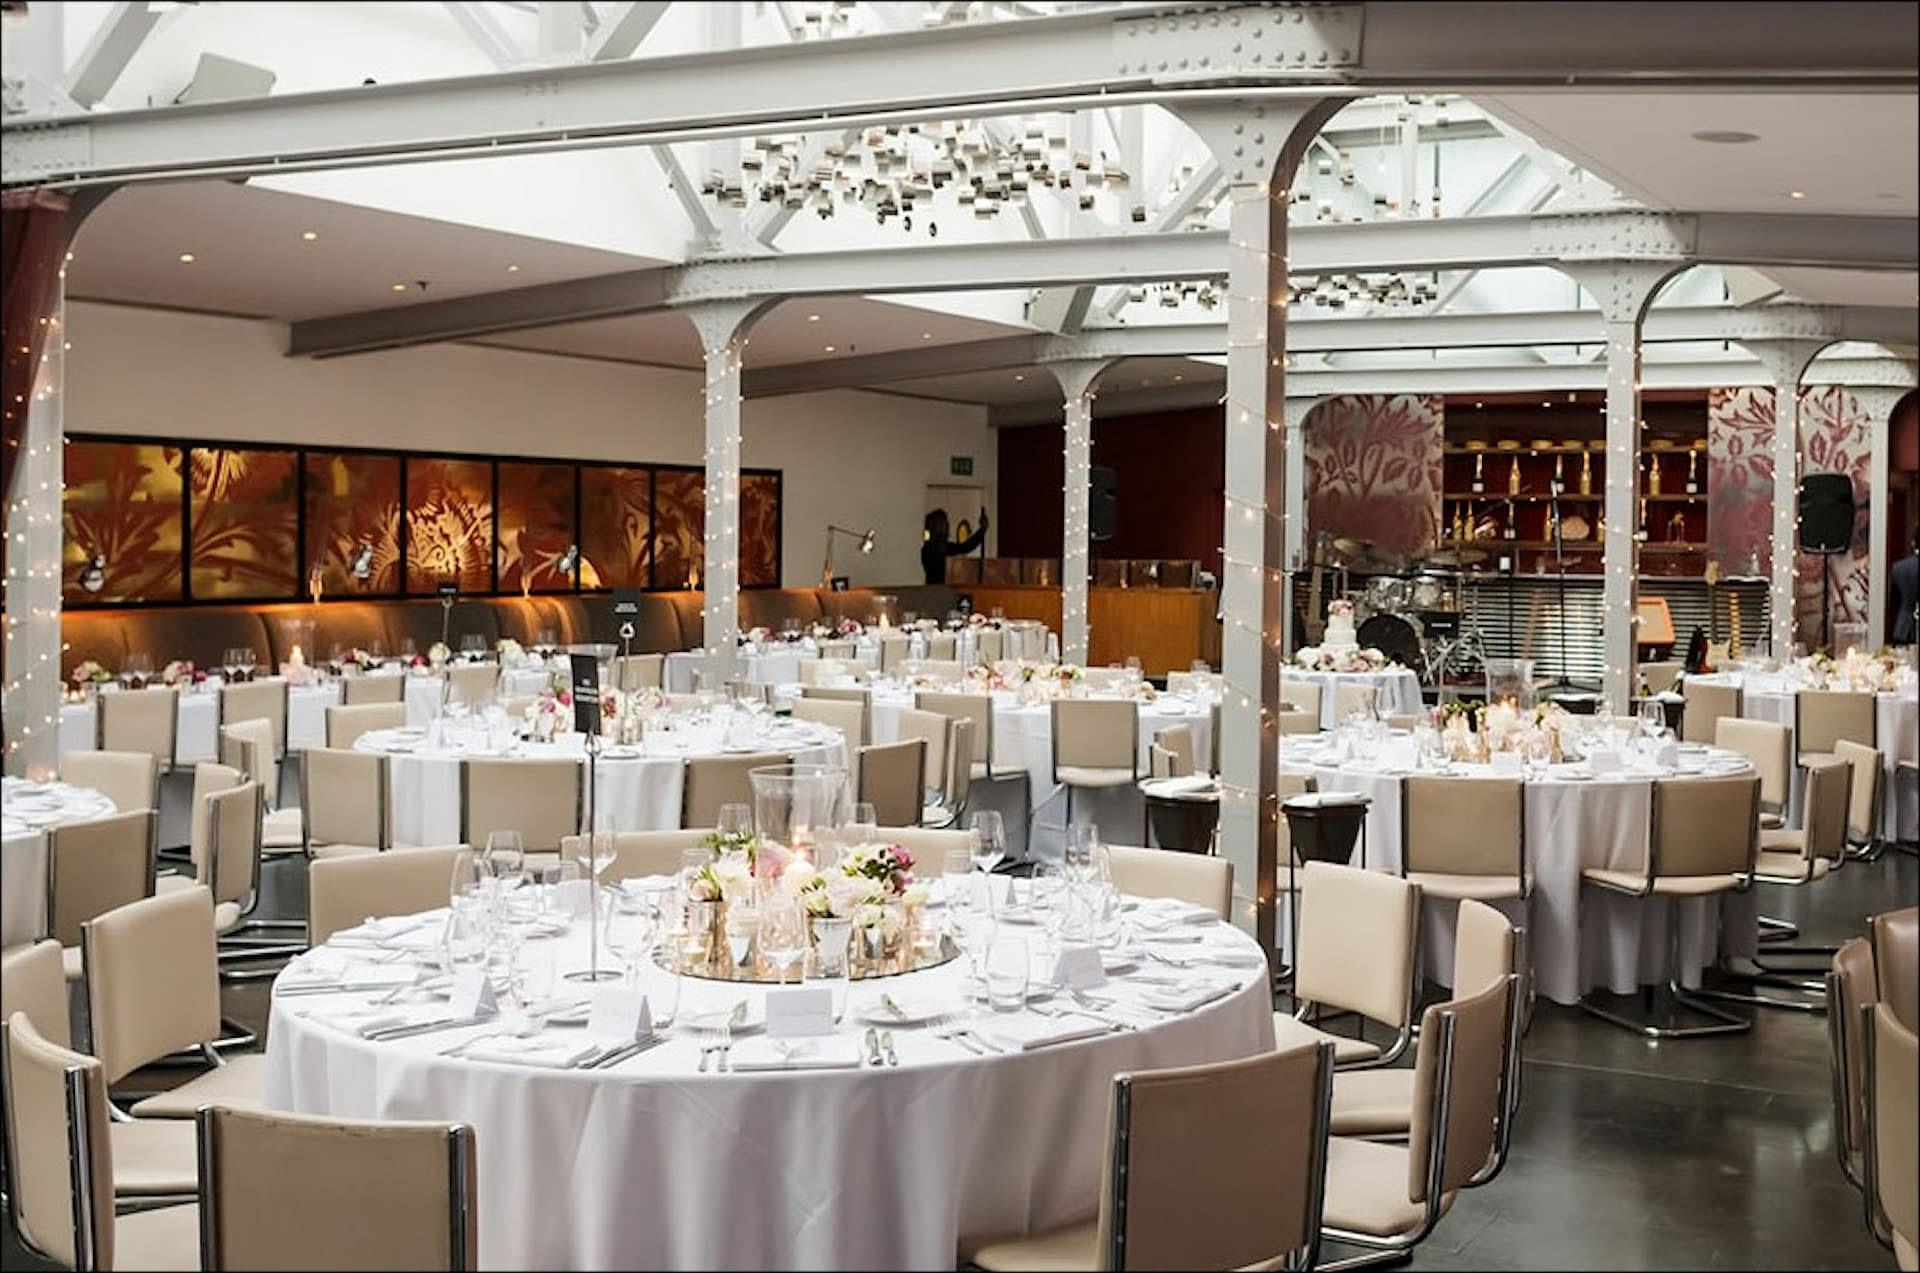 An un-decorated Bluebird Restaurant in Chelsea, London awaiting event planning experts for a private event